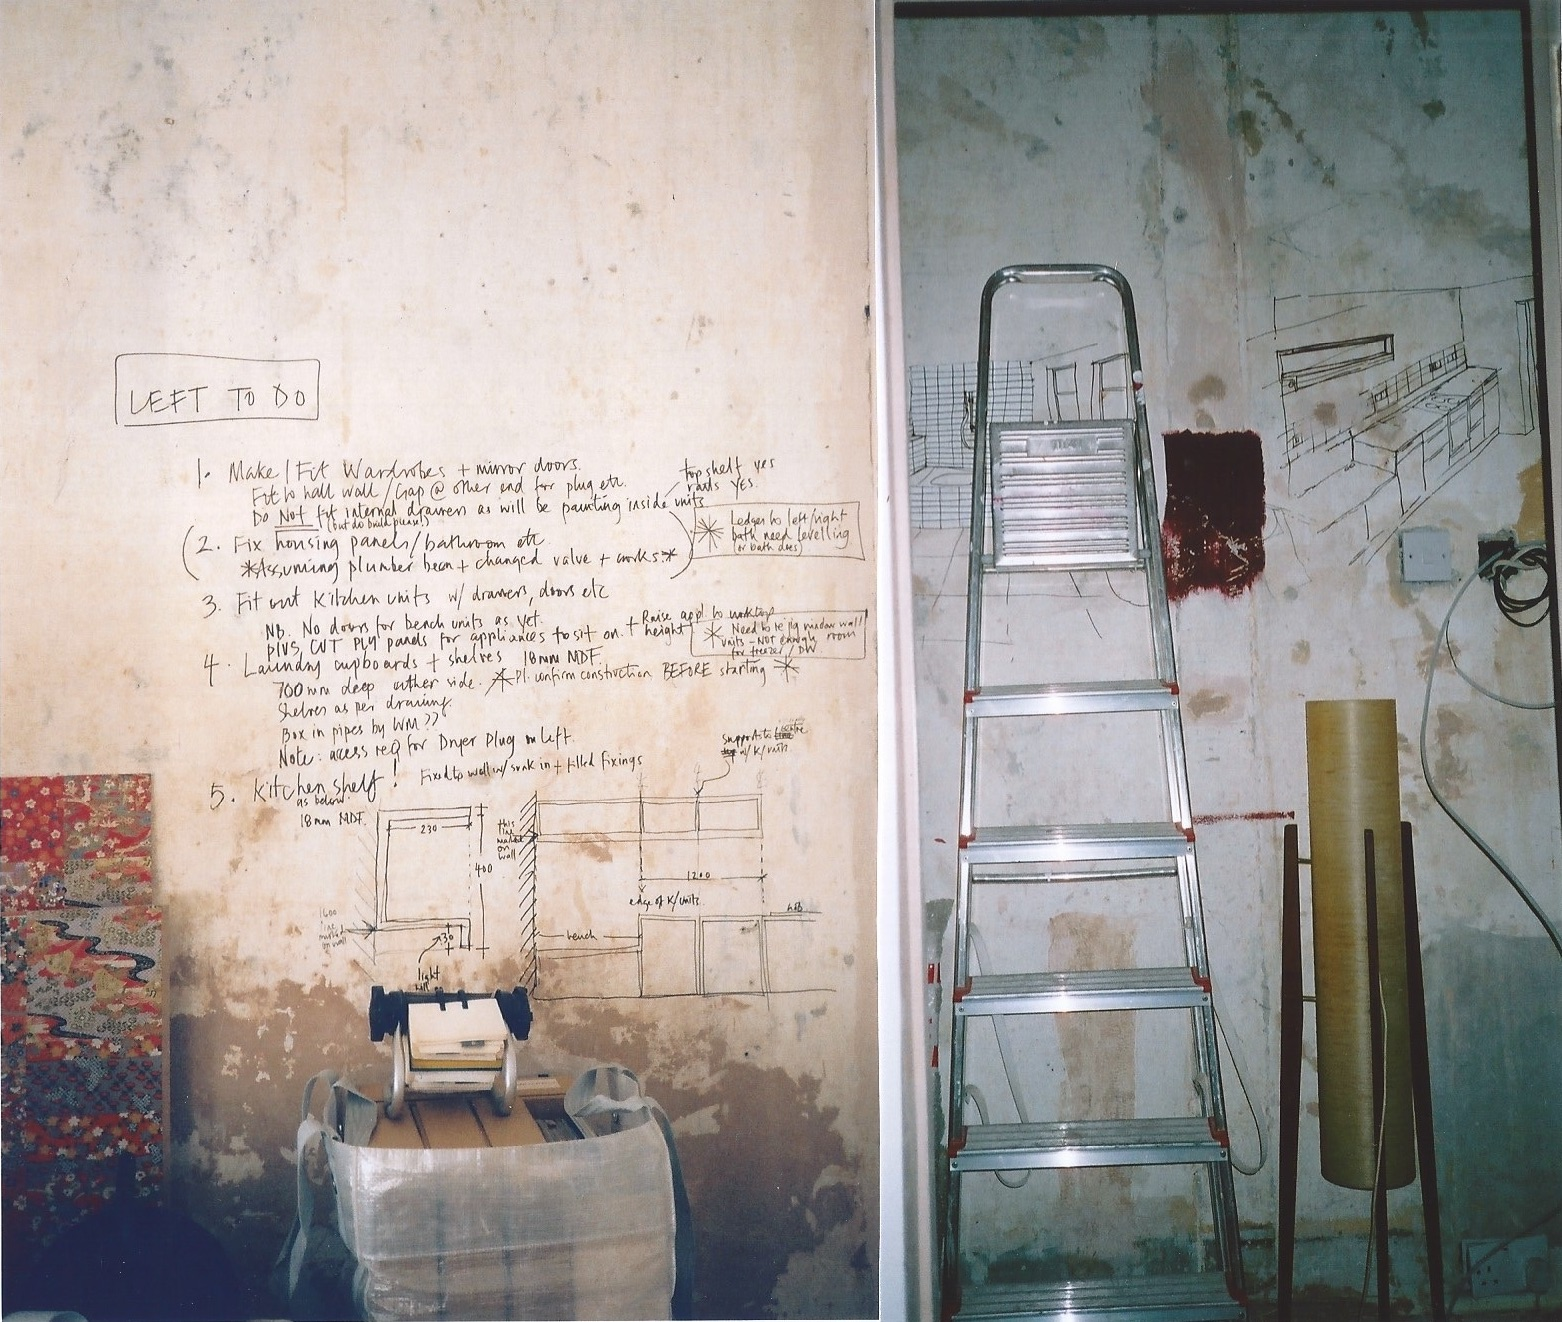 First proper home renovation project. I would draw out what I wanted on the walls, and leave detailed instructions too! Of course, my builders loved me. ;-)